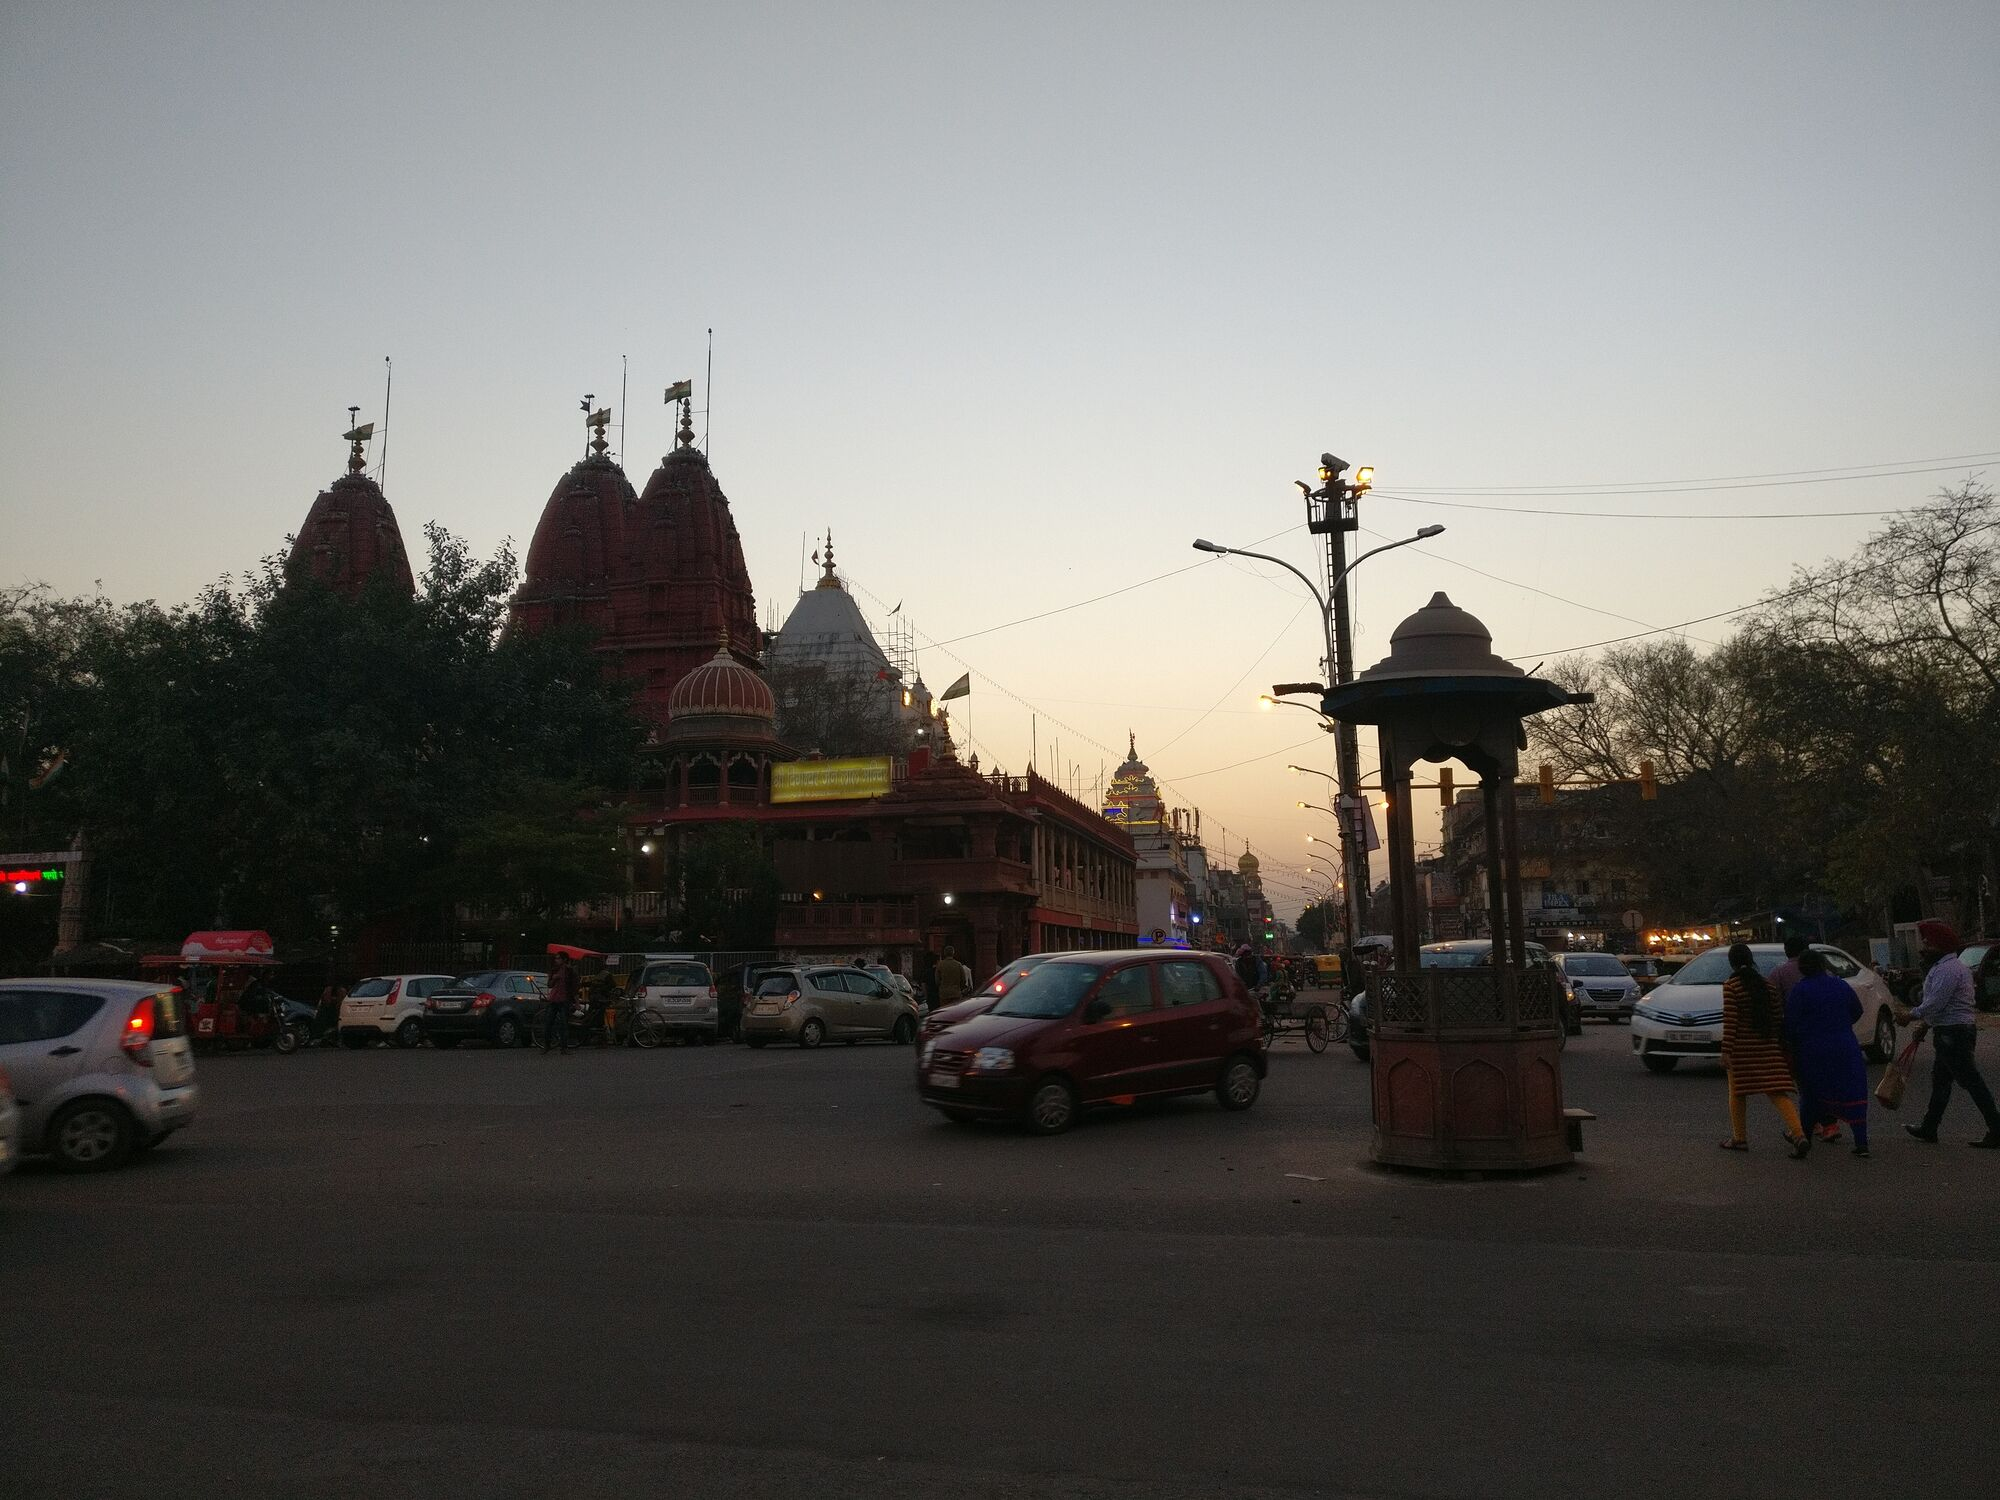 Opposite to Red Fort is the Chandni Chowk market, on left is the Shri Digambar Jain Lal Mandir.